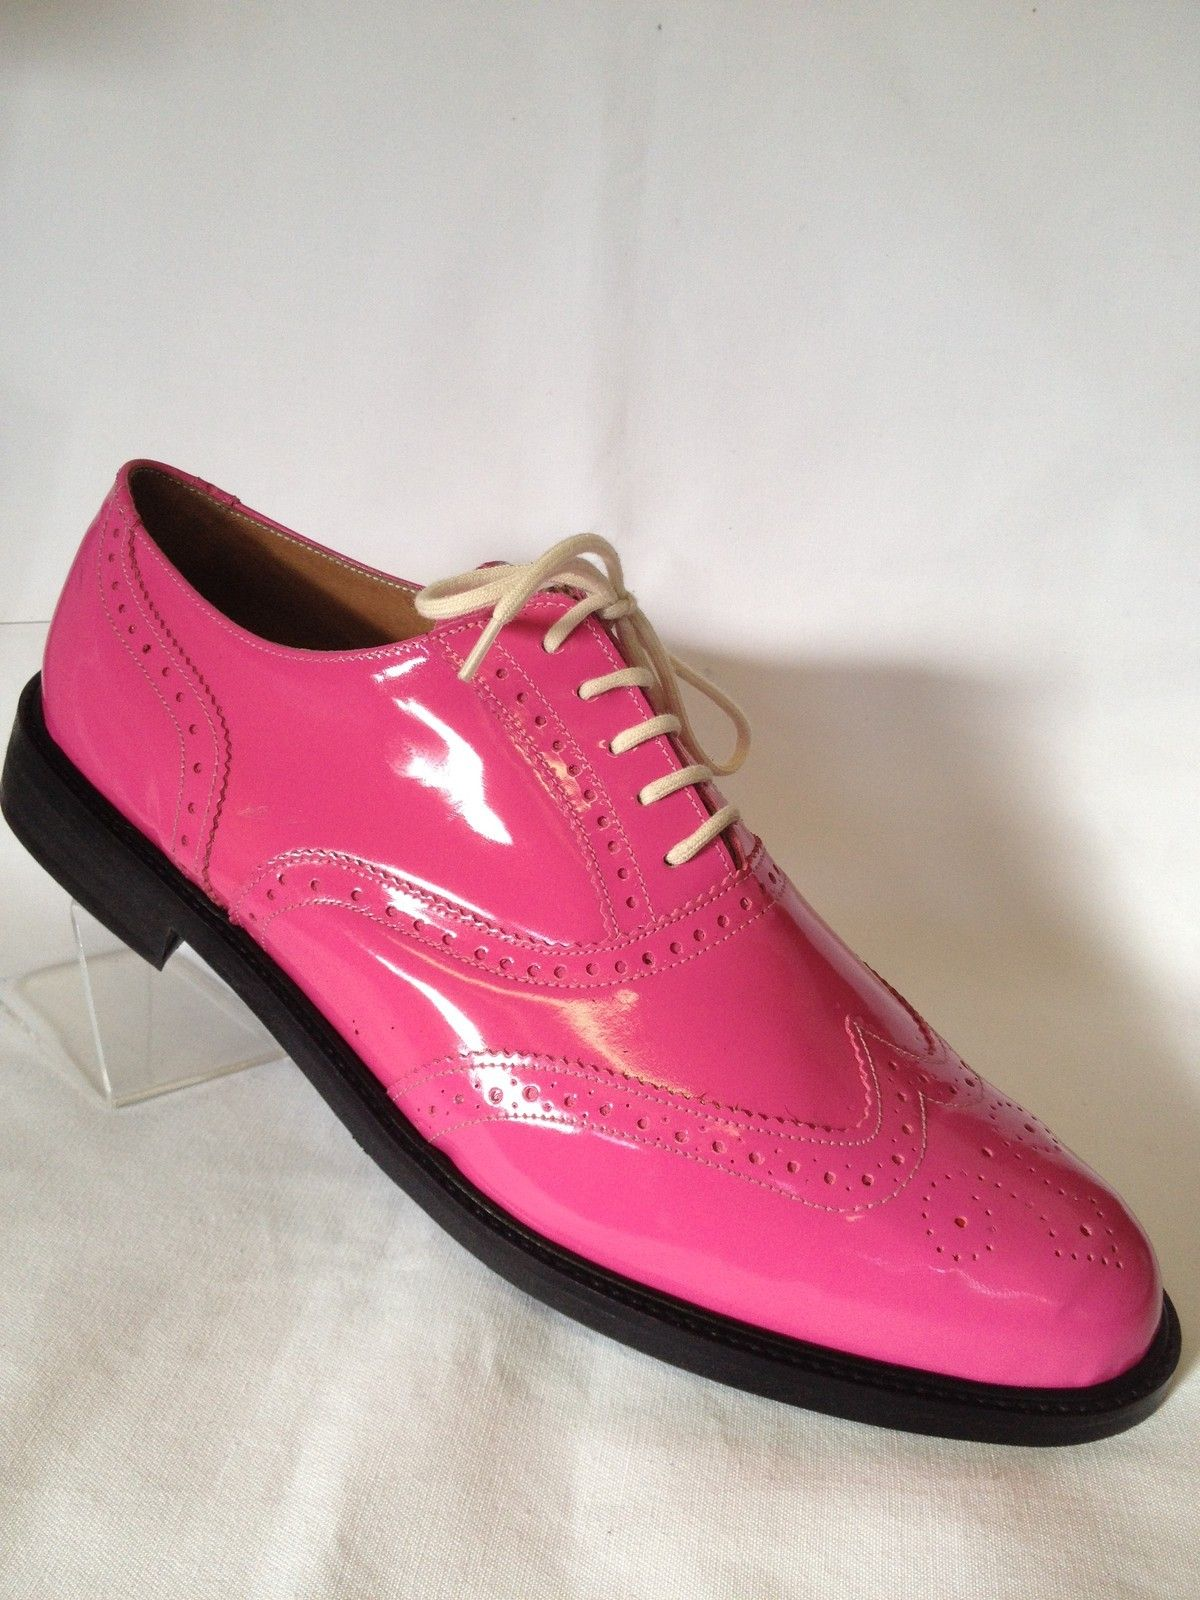 41+ Pink wedding shoes uk ideas in 2021